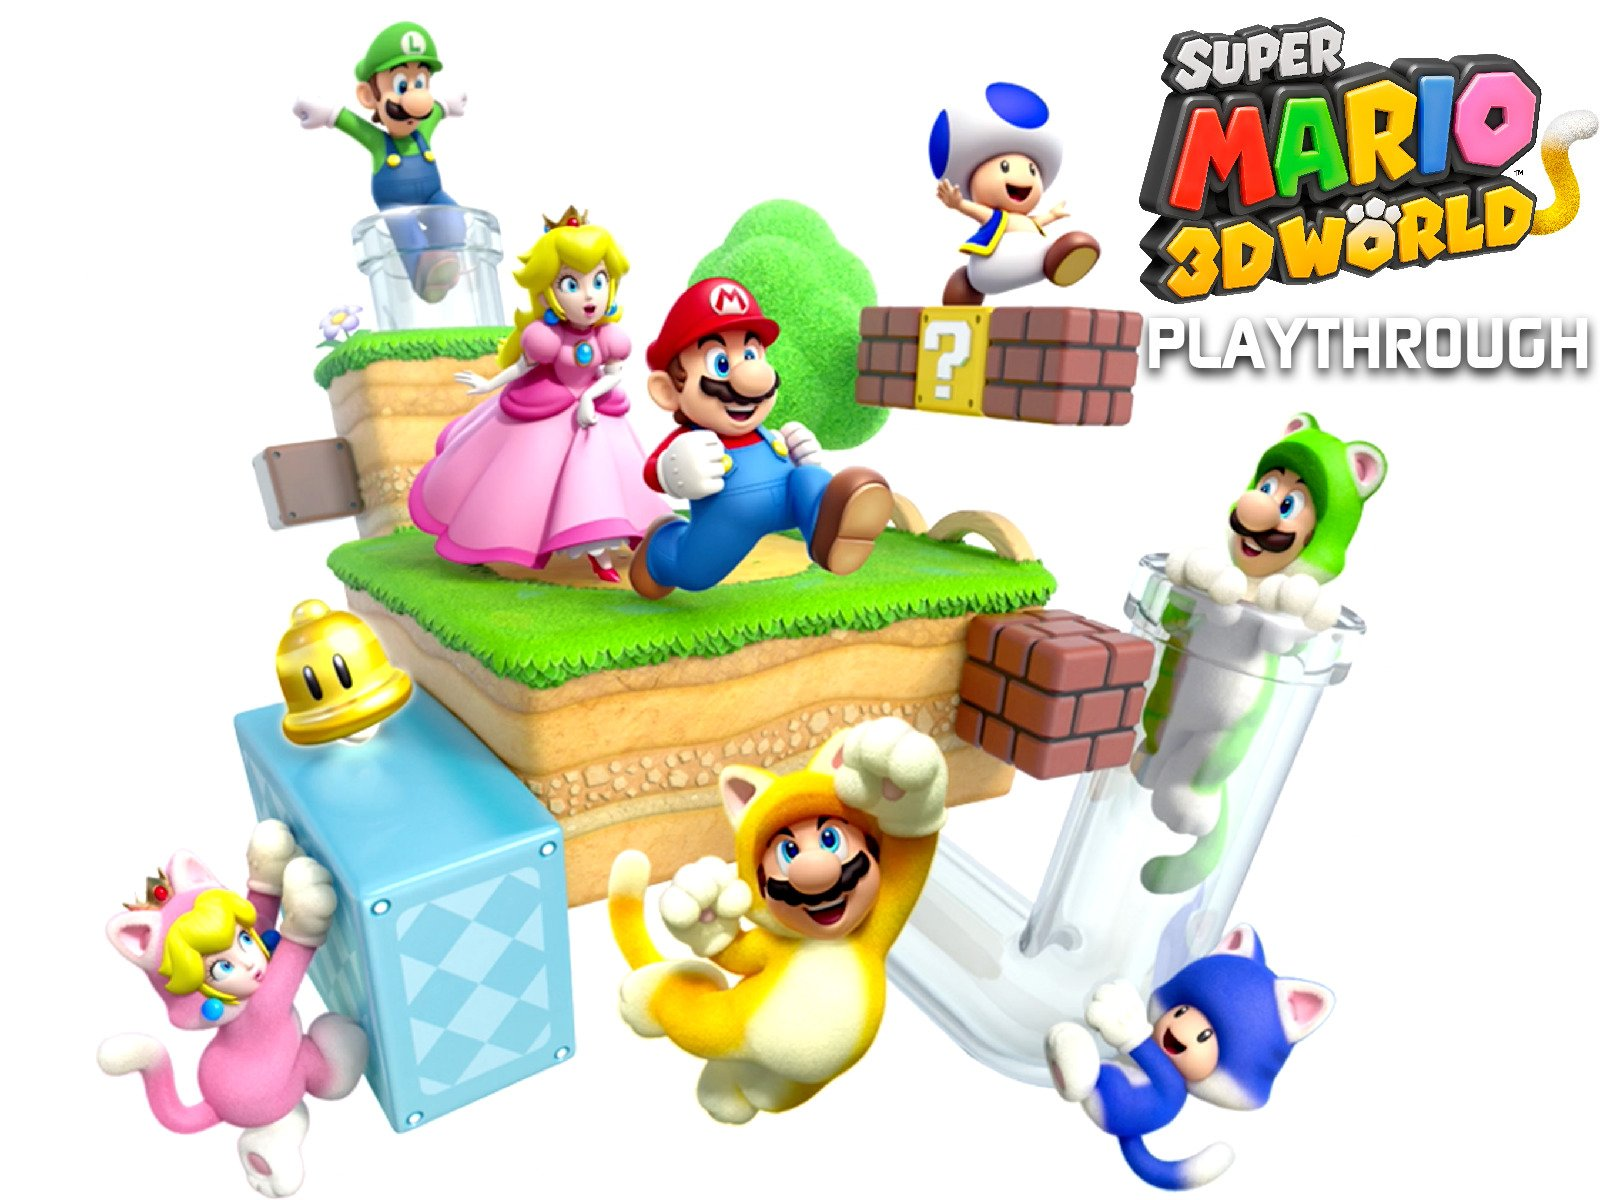 Clip: Super Mario 3D World Playthrough